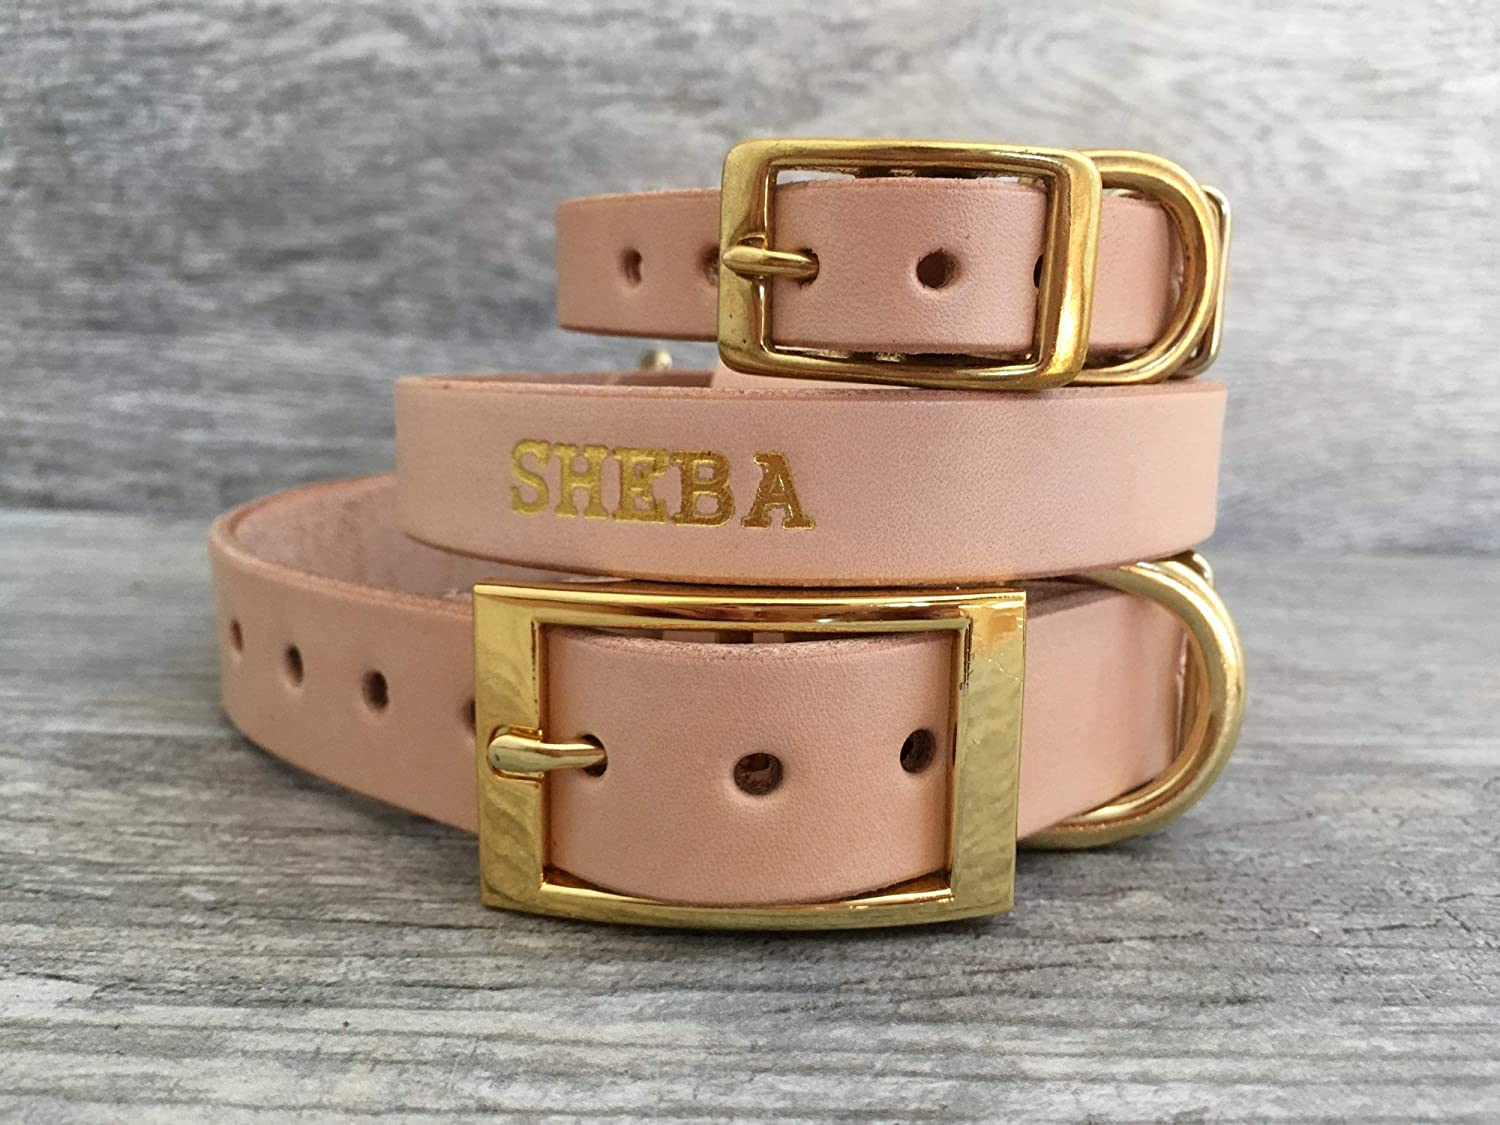 Handmade Personalized Natural Veg Tan Leather Dog Collar, Brass/Gold Tone Foil Embossed Pet Name, Choose Your Font